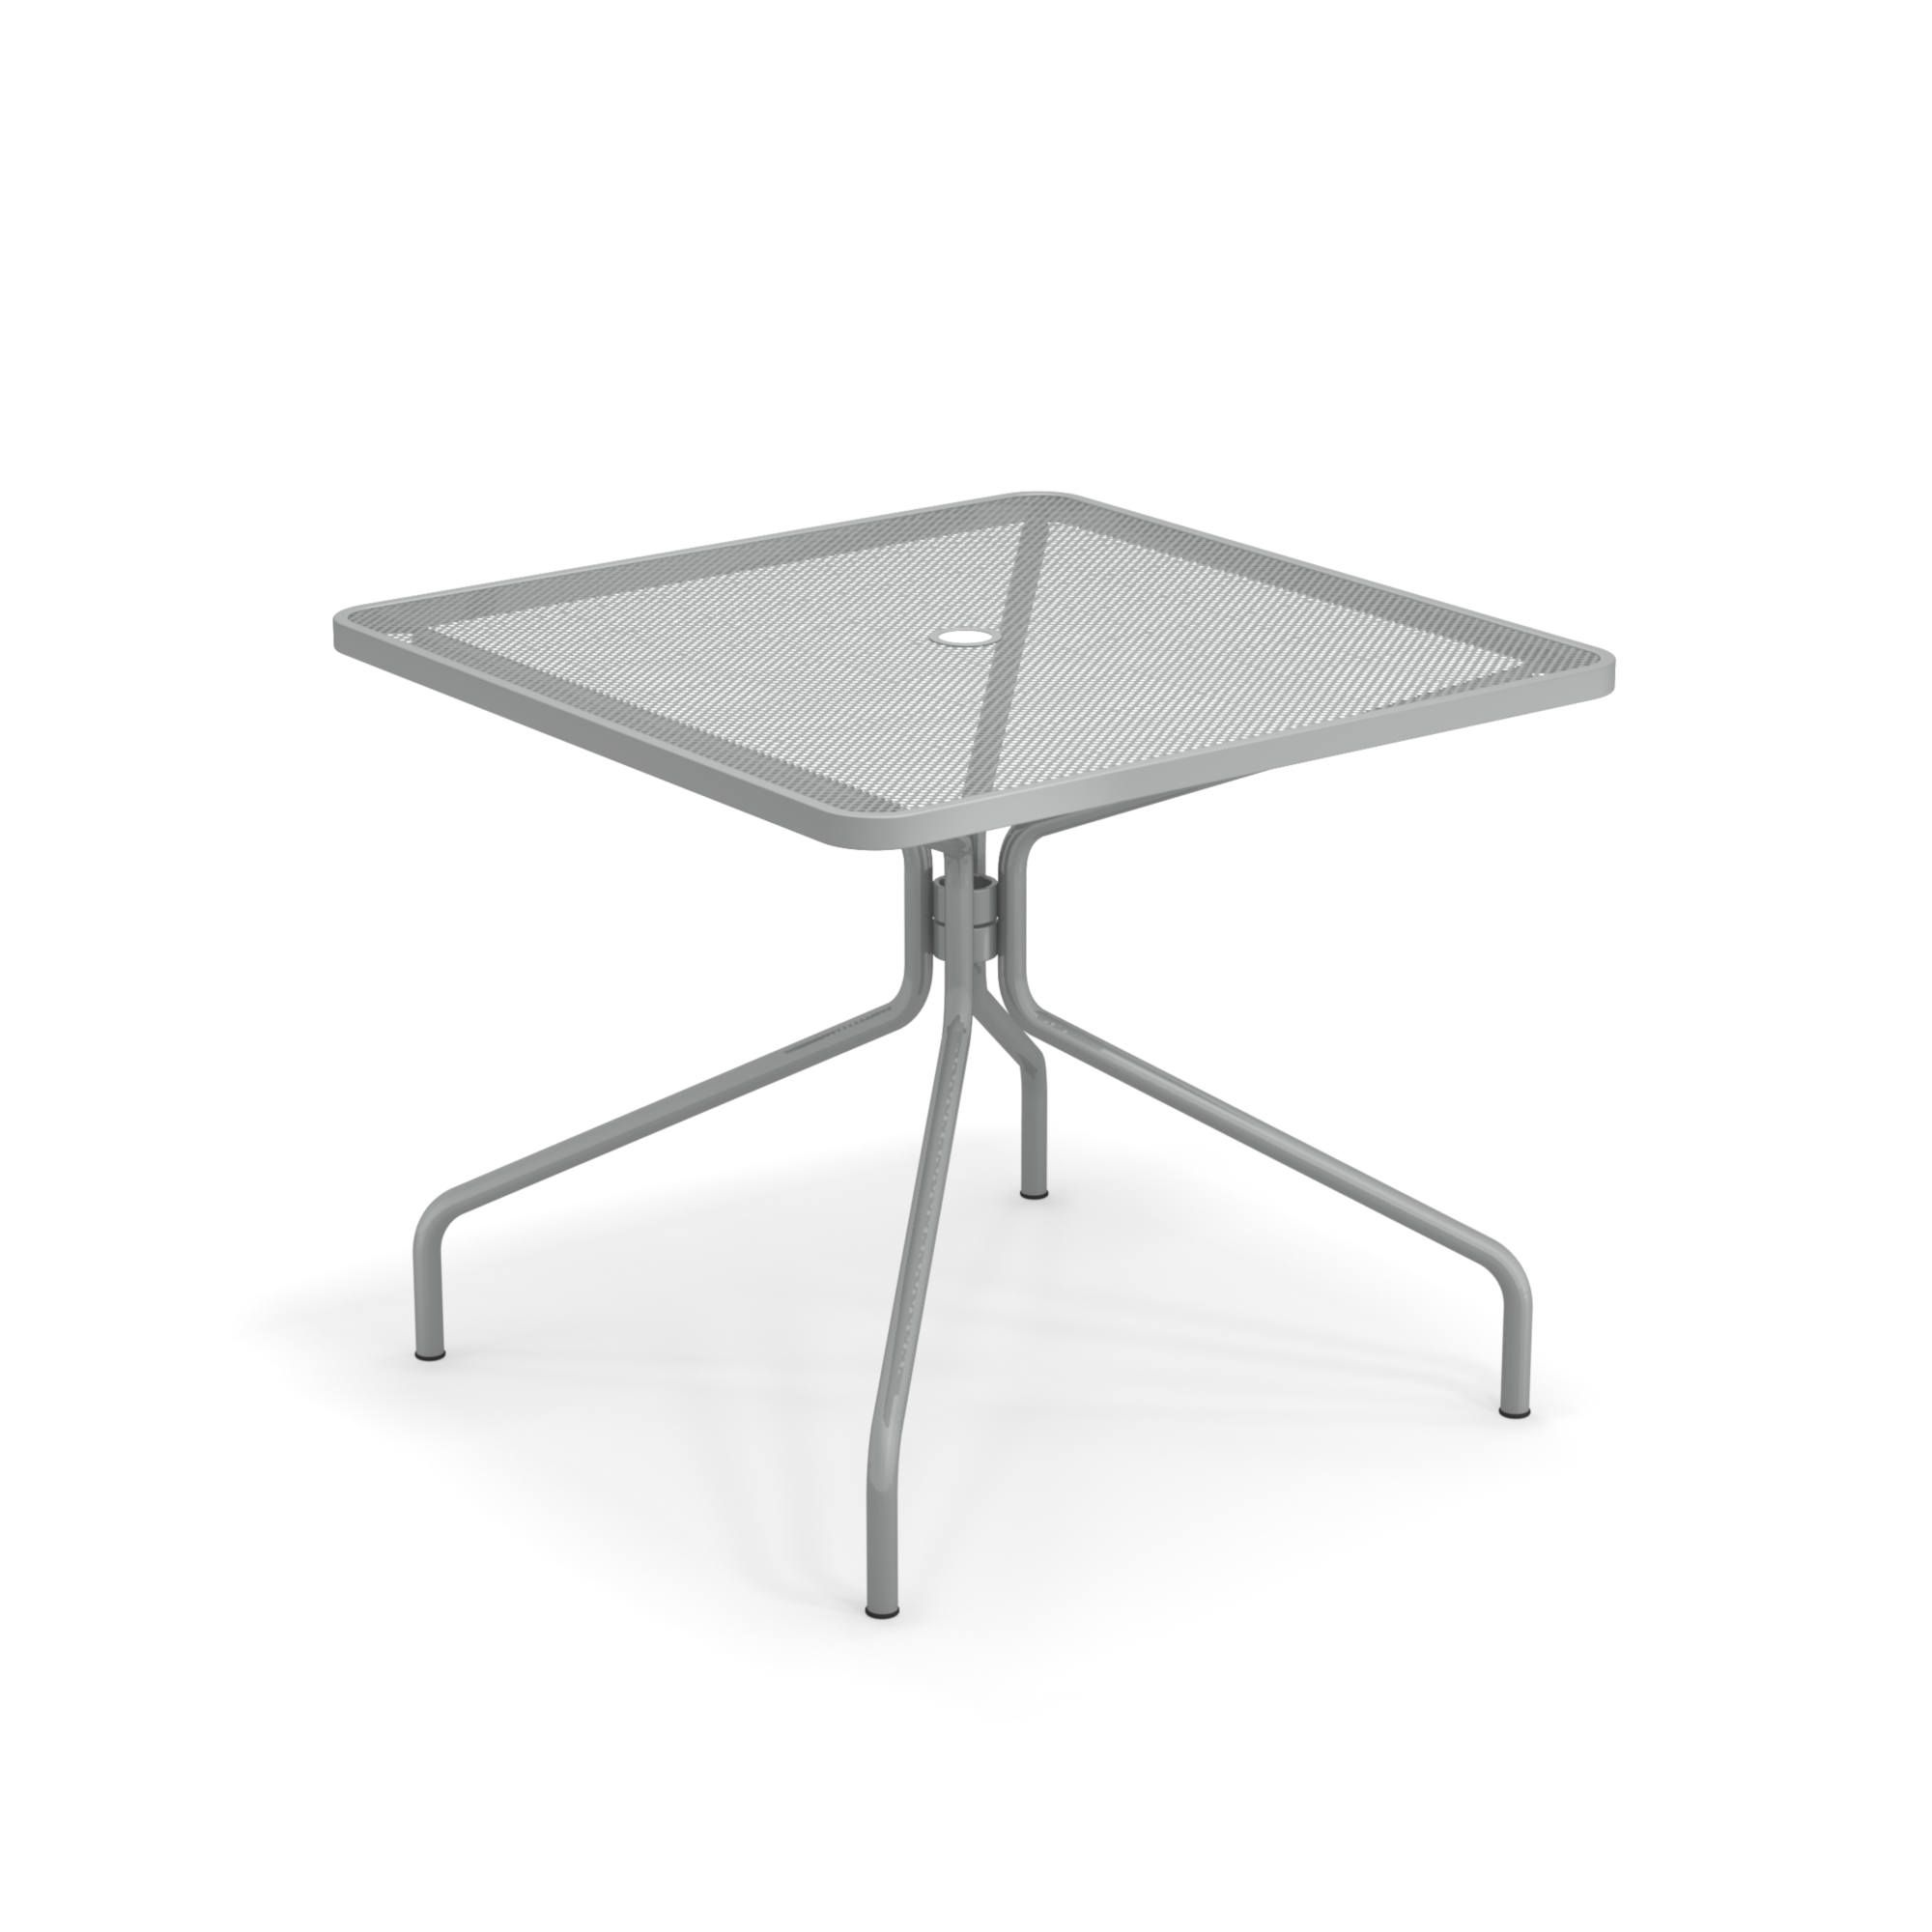 emuamericas, llc 802-20 table, outdoor